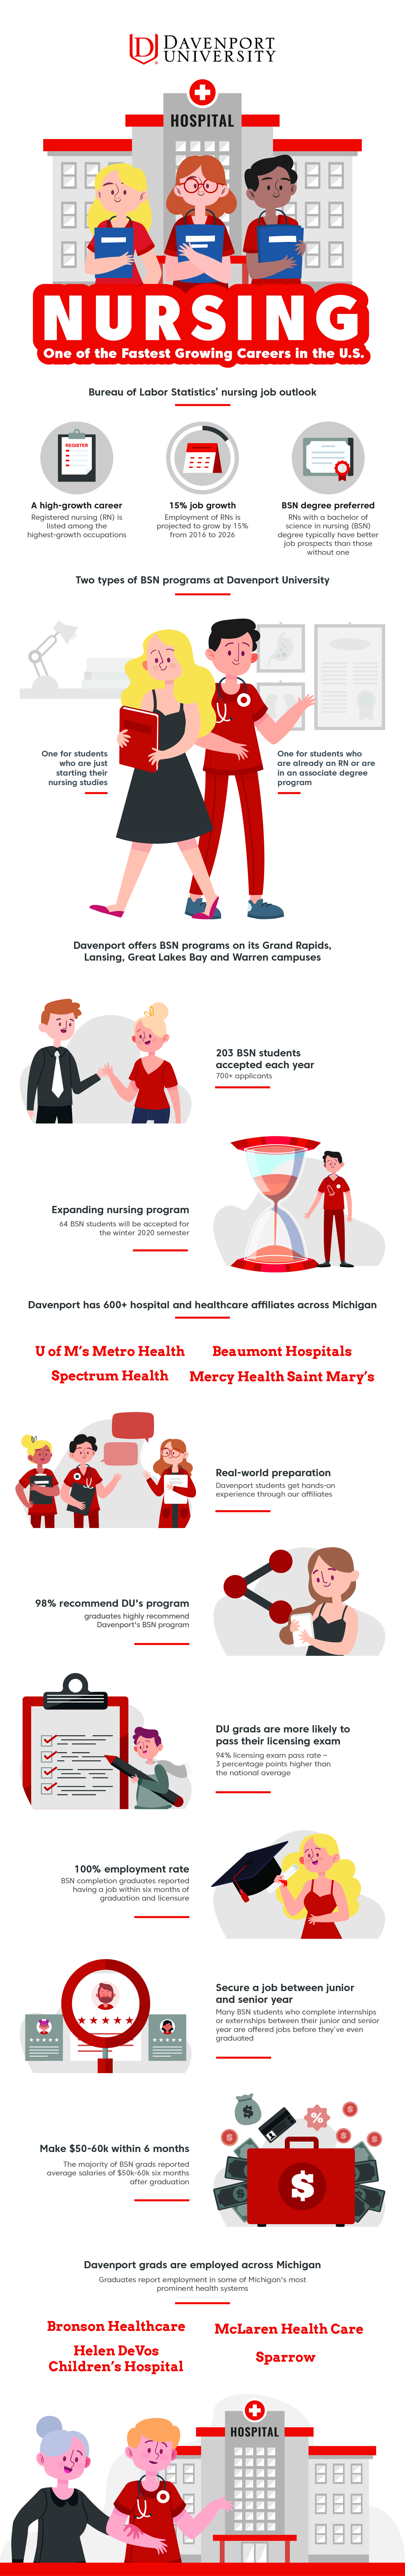 Nursing-Infographic-Davenport-University